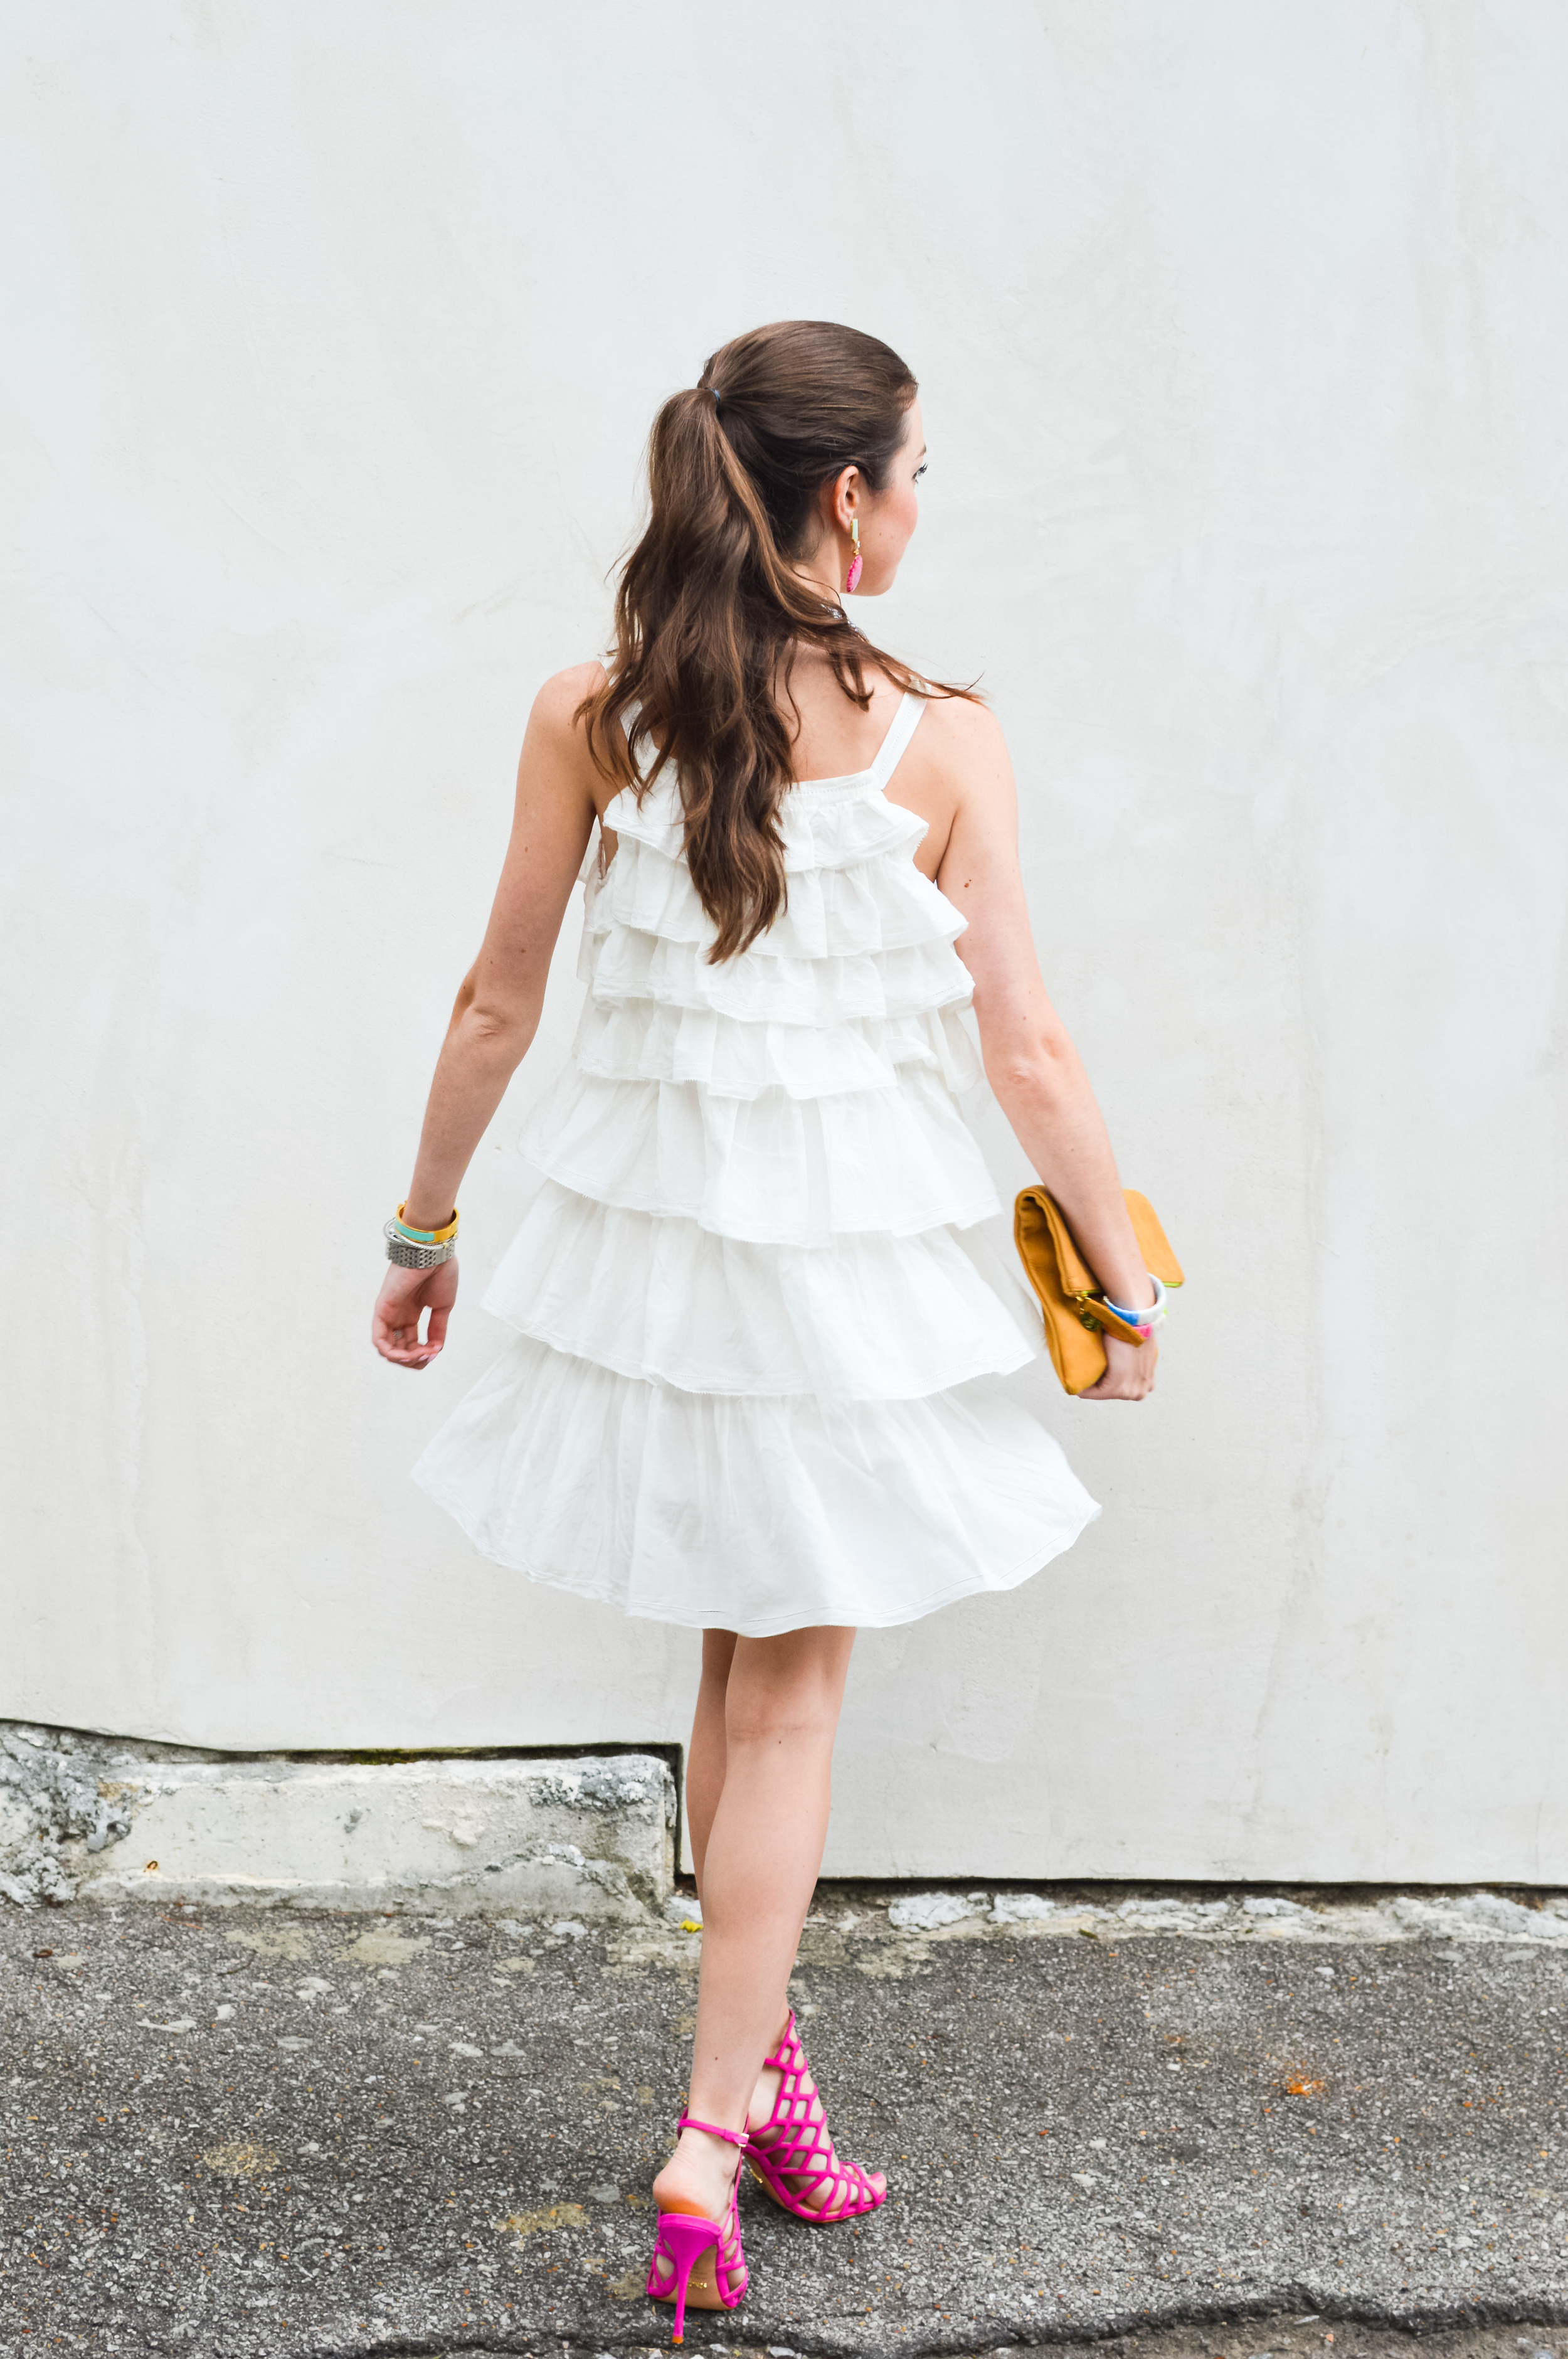 lcb_style_joie_white_dress_fashion_blogger (28 of 42).jpg